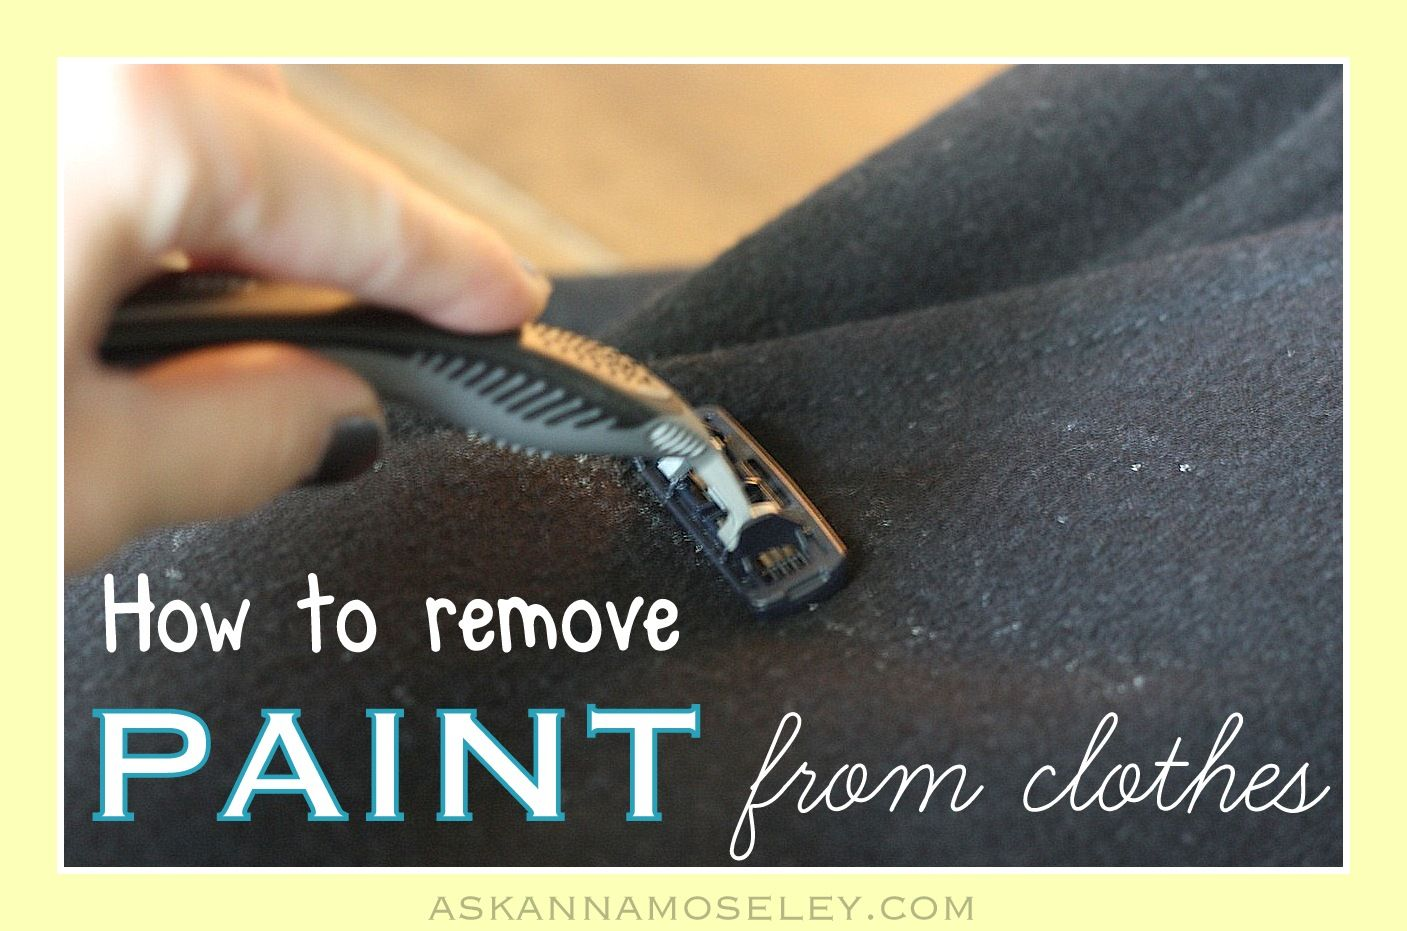 How To Get Paint Off Clothes Paint Remover Remove Paint From